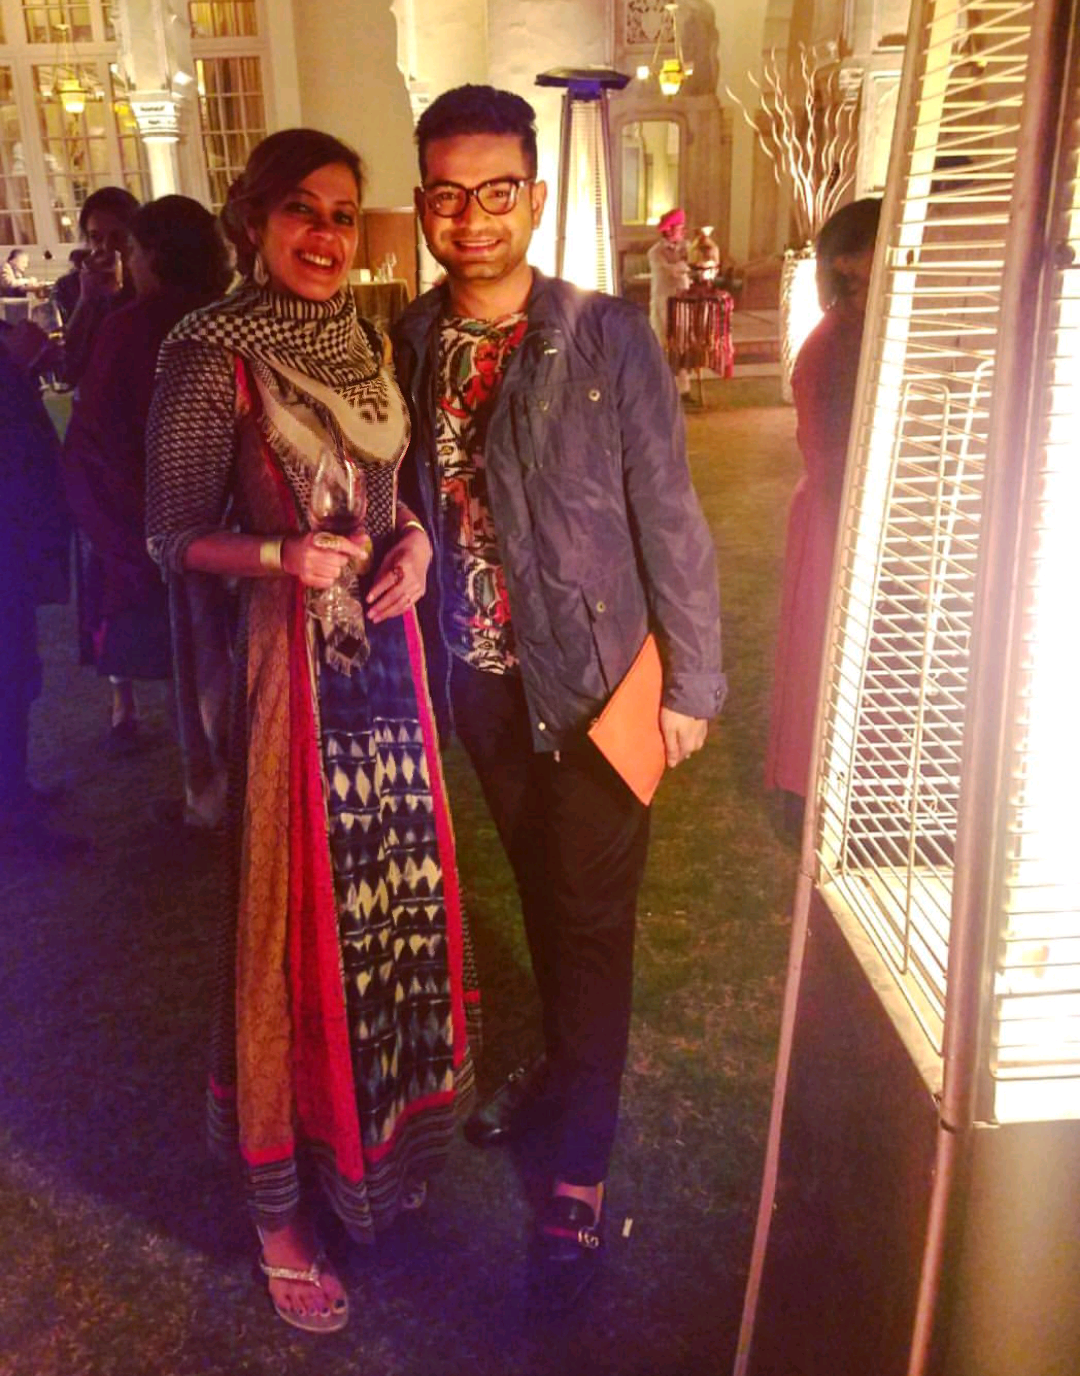 JAIPUR LITERATURE FESTIVAL.RAMBAGH PALACE, JAIPUR, INDIA. 2018 - With fashion designer and entrepreneur Pranay Baidya Atelier at a private event organized by HarperCollins.KEYWORDS: Jaipur Lit Fest, Jaipur Literature Festival, ZEE JLF, HarperCollins, Pranay Baidya, Nish Amarnath, Nischinta Amarnath, Victims For Sale.